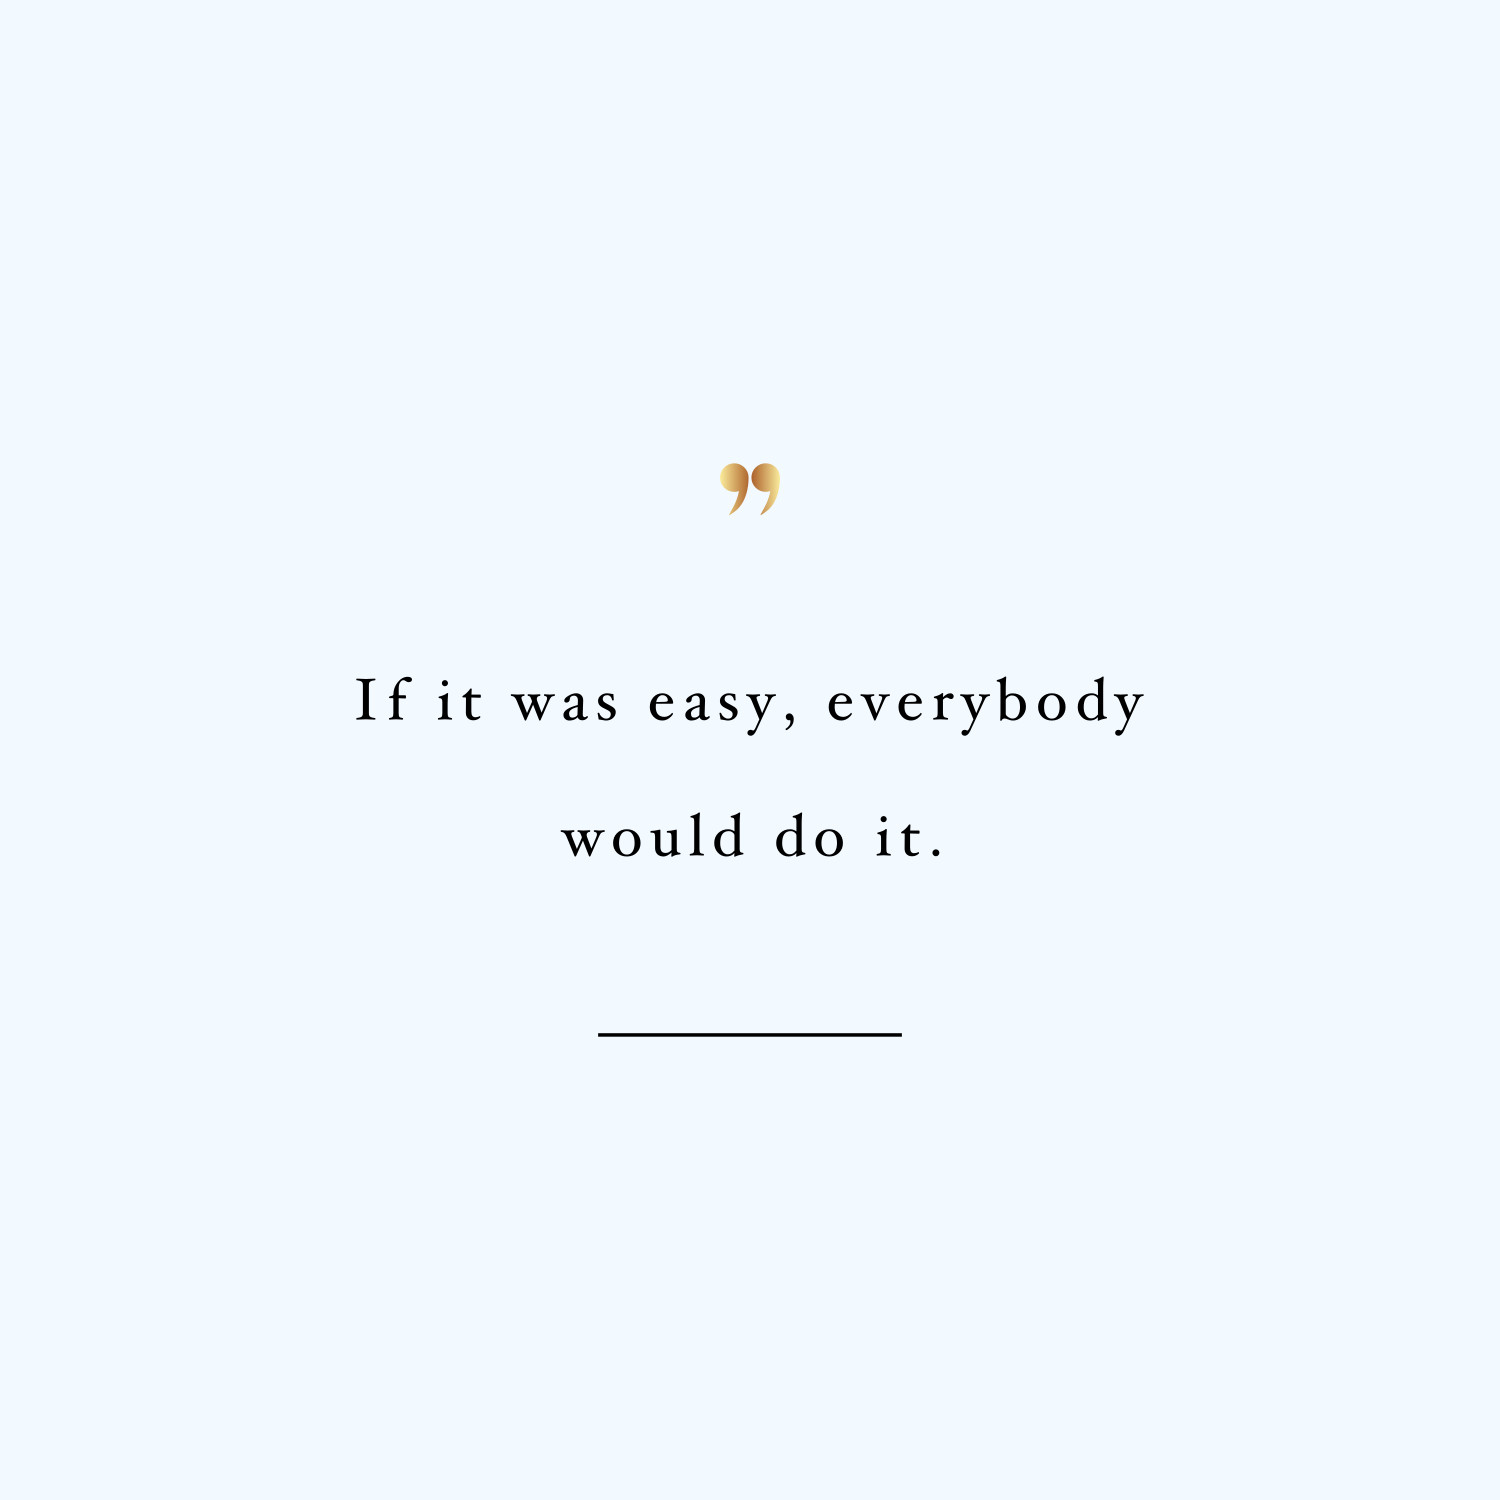 You are not everybody! Browse our collection of motivational health and fitness quotes and get instant exercise and weight loss inspiration. Transform positive thoughts into positive actions and get fit, healthy and happy! https://www.spotebi.com/workout-motivation/you-are-not-everybody-exercise-and-weight-loss-inspiration-quote/